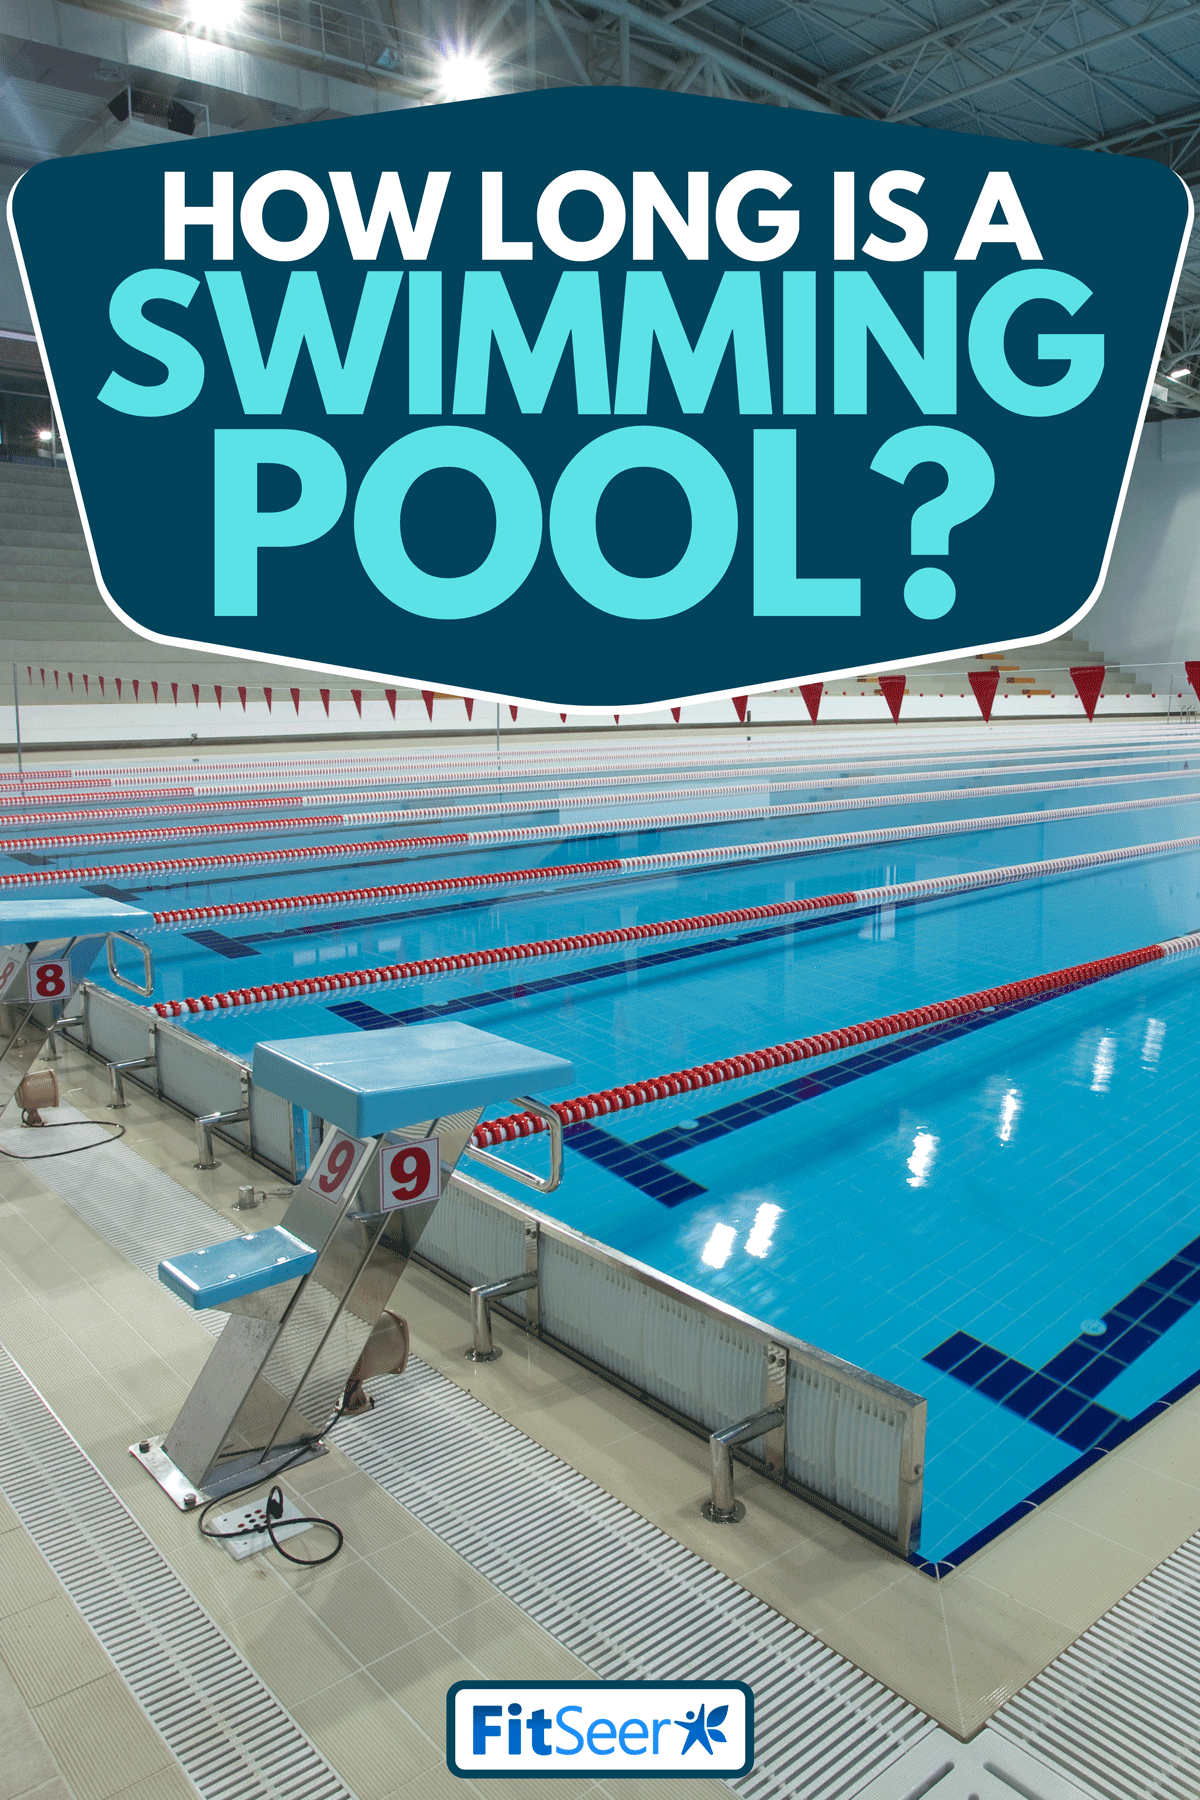 An Olympic swimming pool, How Long Is A Swimming Pool?